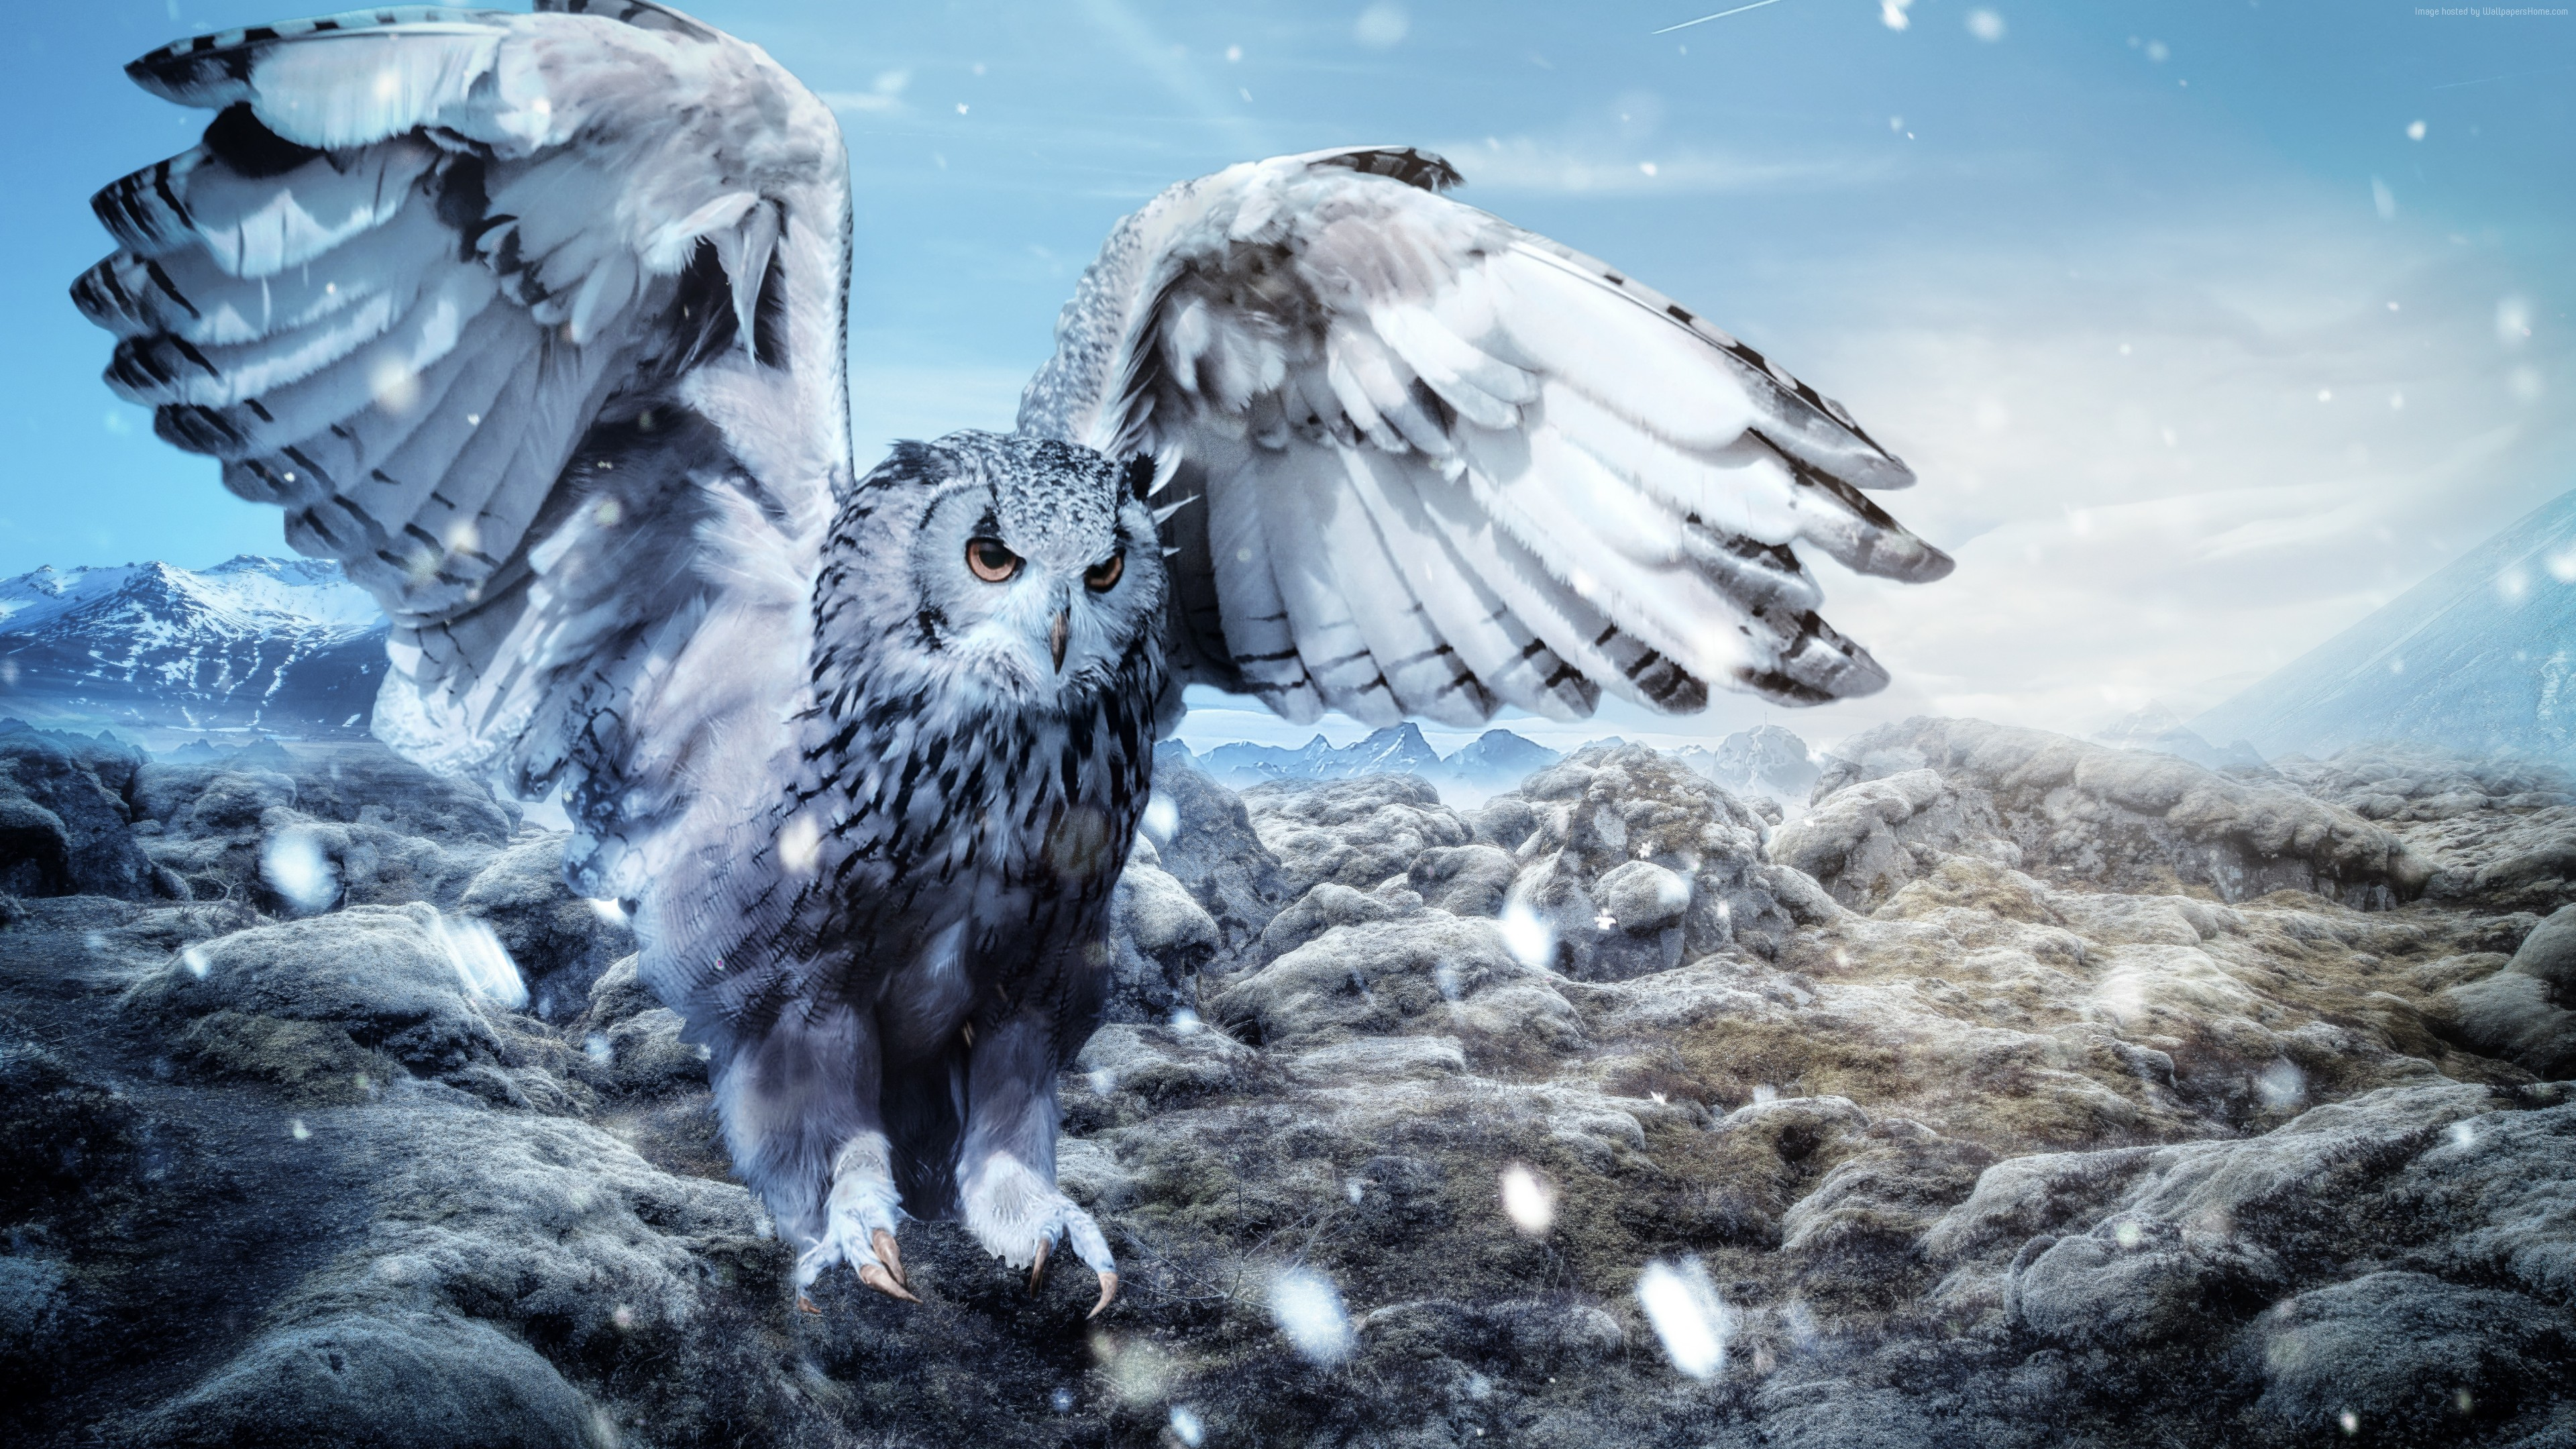 Stock Images owl, mountains, snow, winter, 5k, Stock Images